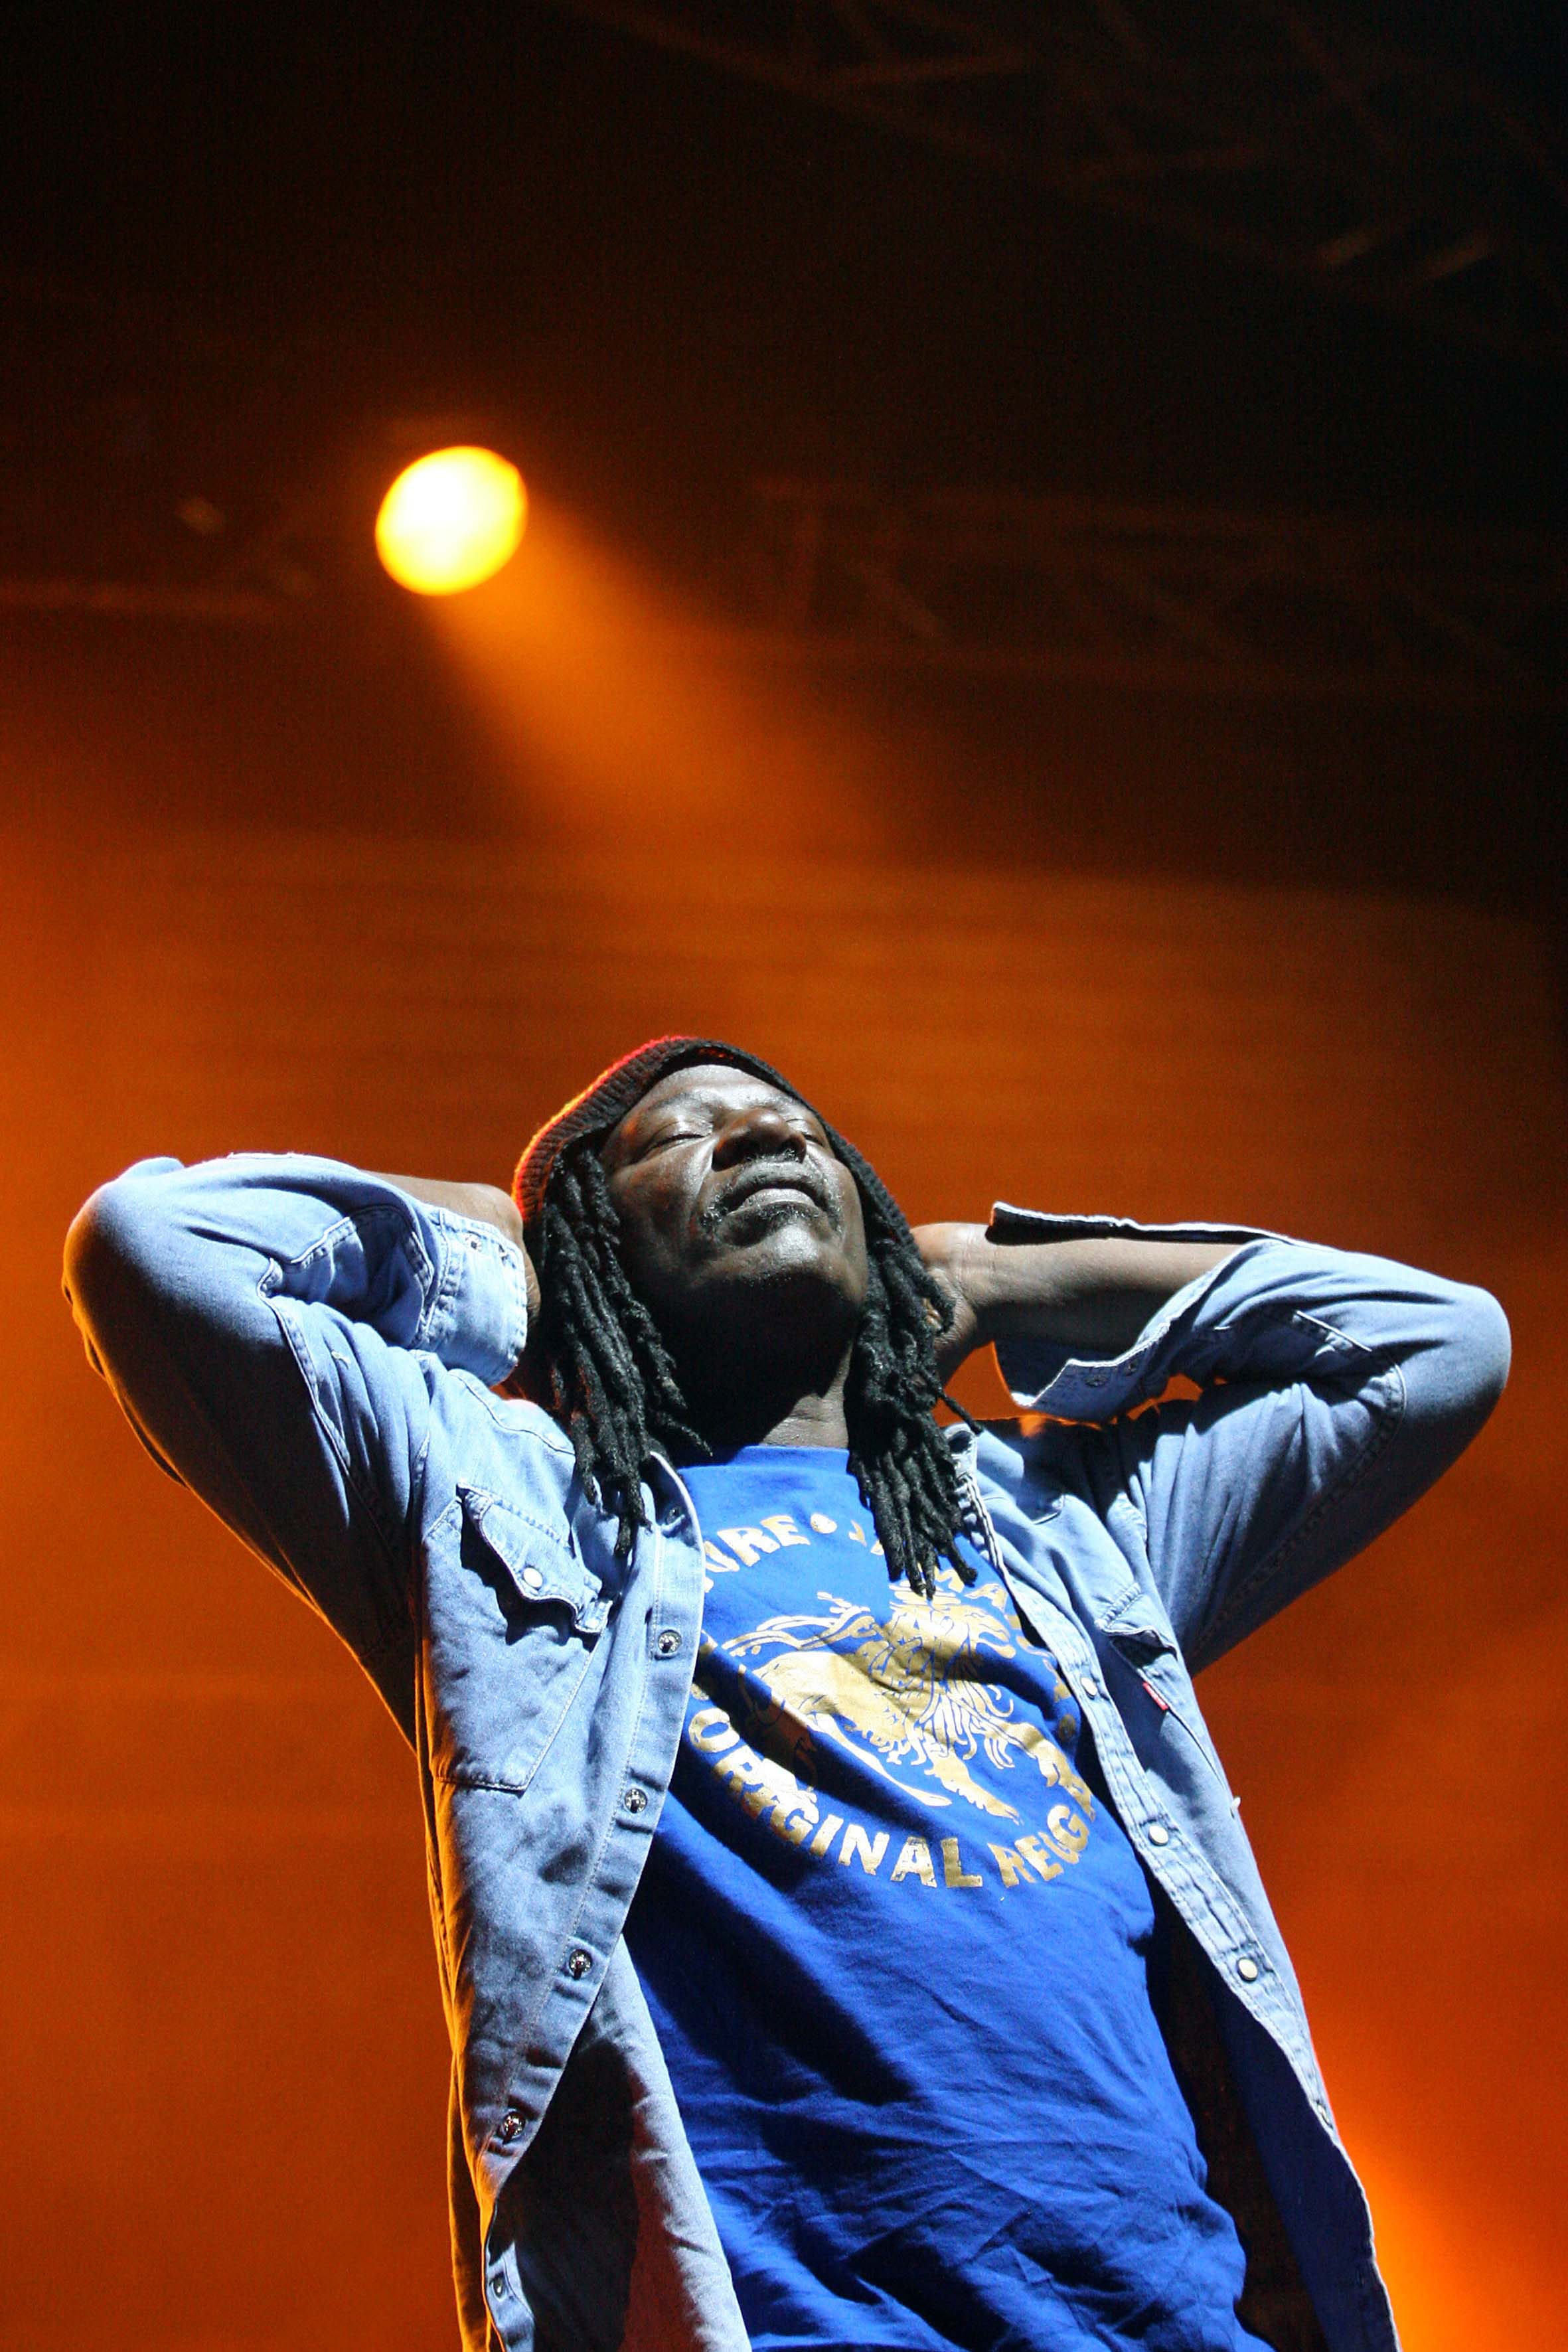 2008_marvaux_alpha blondy.jpg